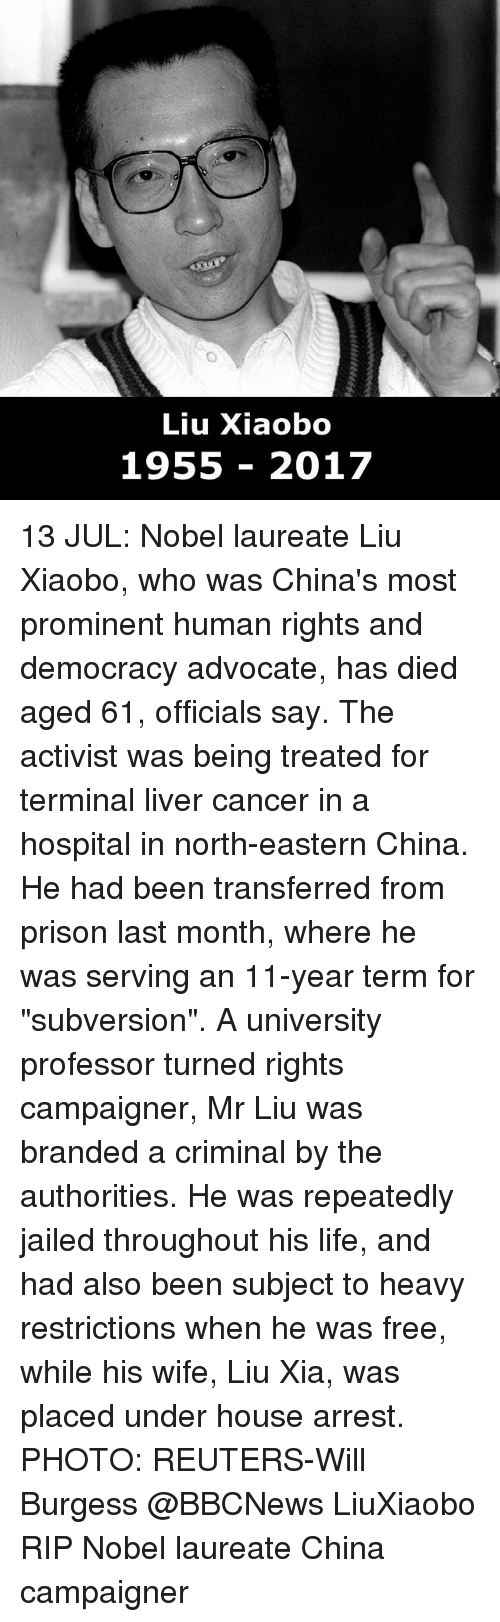 "Life, Memes, and China: Liu Xiaobo  1955 2017 13 JUL: Nobel laureate Liu Xiaobo, who was China's most prominent human rights and democracy advocate, has died aged 61, officials say. The activist was being treated for terminal liver cancer in a hospital in north-eastern China. He had been transferred from prison last month, where he was serving an 11-year term for ""subversion"". A university professor turned rights campaigner, Mr Liu was branded a criminal by the authorities. He was repeatedly jailed throughout his life, and had also been subject to heavy restrictions when he was free, while his wife, Liu Xia, was placed under house arrest. PHOTO: REUTERS-Will Burgess @BBCNews LiuXiaobo RIP Nobel laureate China campaigner"